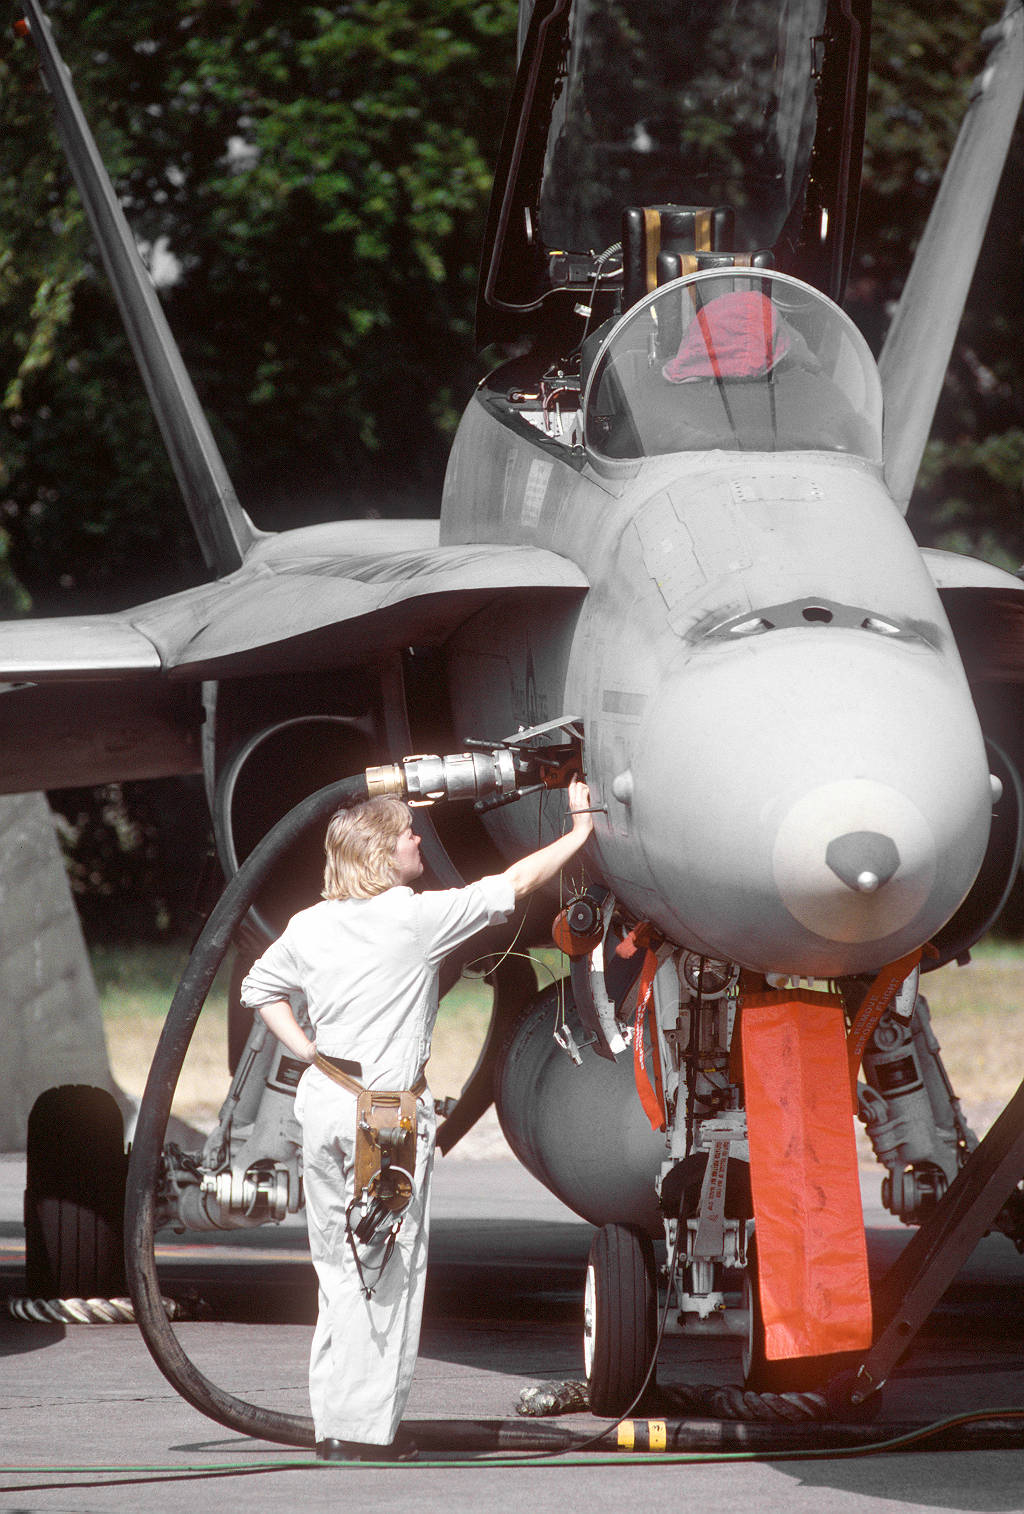 A member of the 409th Squadron refuels a CF-18 Hornet of the Canadian Forces at Söllingen airfield.